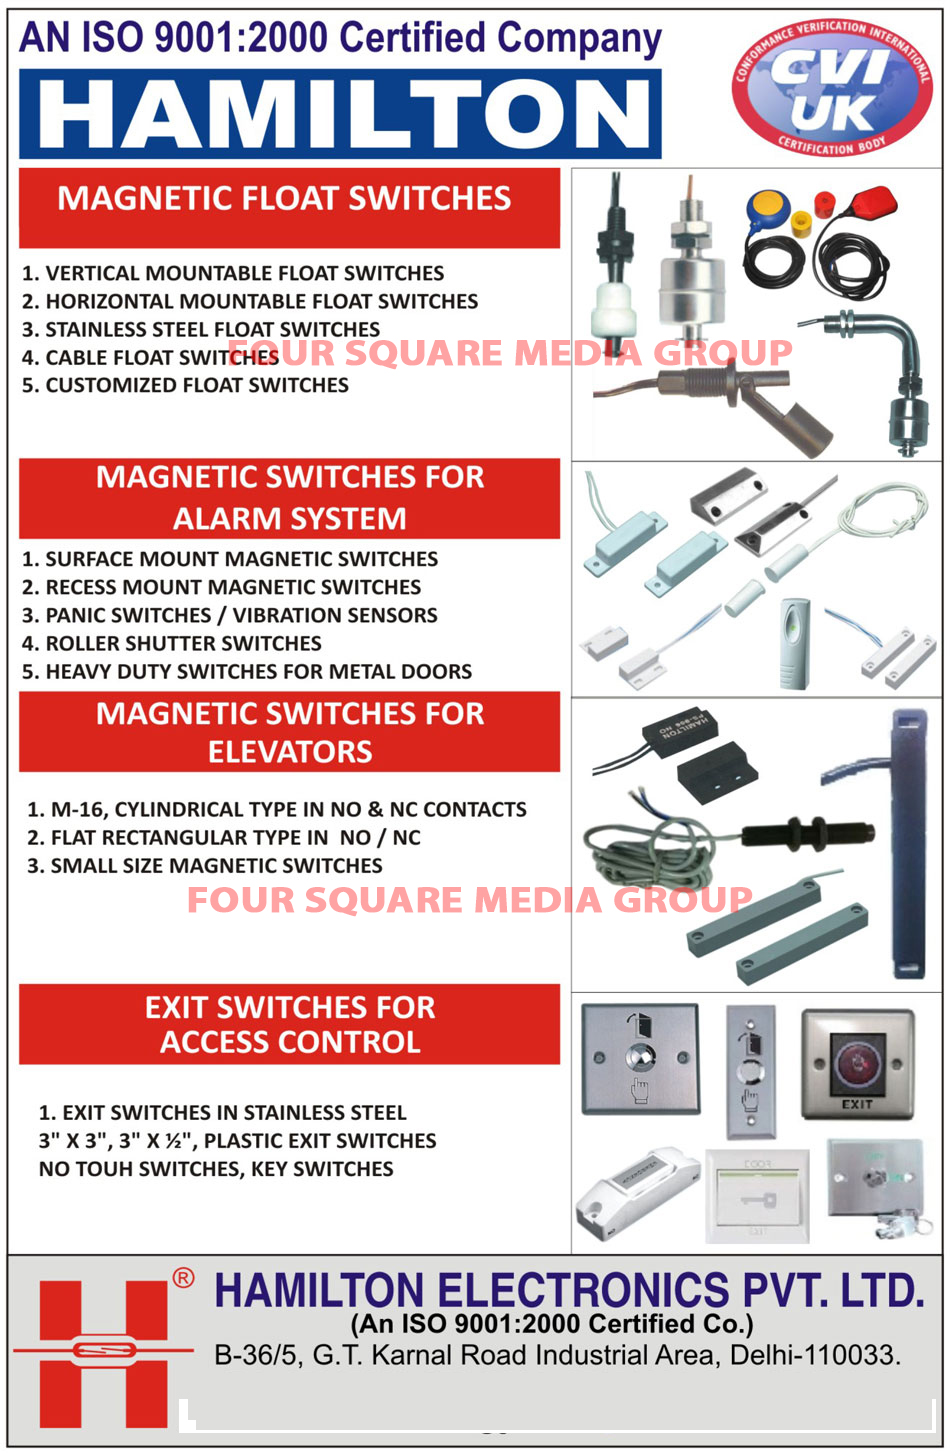 Switches, Energy Saving Devices, Float Switches, Liquid Level Controllers, Process Control Equipment, Proximity Switches, Reed Relays, Security Systems, Sensors, Security Alarm Systems, Switches, Reed Switches, PIR Sensor, Panic Switches, Emergency Switches, Vibration Sensors, Electromagnetic Locks, Switch, Electronic Switches, Induvtive Proximity Switches, Magnetic Float Switches, Magnetic Proximity Switches, Photoelectric Switches, Capacitive Switches, Security Alarm System Sensors, Security Alarm System Accessories, Security Alarm System Accessory, Glass Break Sensors, Photo Beam Sensors, Twin Beam Sensors, Electric Door Strikes, Hooters, Sirens, Foot Switches, Smoke Sensors, Magnetic Switches for Doors, Magnetic Switches for Windows, Magnetic Switches for Ventilators, Heavy Duty Switches for Rolling Shutters, Outdoor PIR Lights, Vertical Mountable Float Switches, Horizontal Mountable Float Switches, Stainless Steel Float Switches, Cable Float Switches, Magnetic Switches For Alarm System, Magnetic Switches For Elevator, Exit Switches For Access Control, Surface Mount Magnetic Switches, Recess Mount Magnetic Switches, Roller Shutter Switches, Metal Door Heavy Duty Switches, M 16 Magnetic Switches, Cylindrical Magnetic Switches, Flat Rectangular Magnetic Switches, Small Size Magnetic Switches, Stainless Steel Exit Switches, Plastic Exit Switches, No Touch Exit Switches, Key Switches